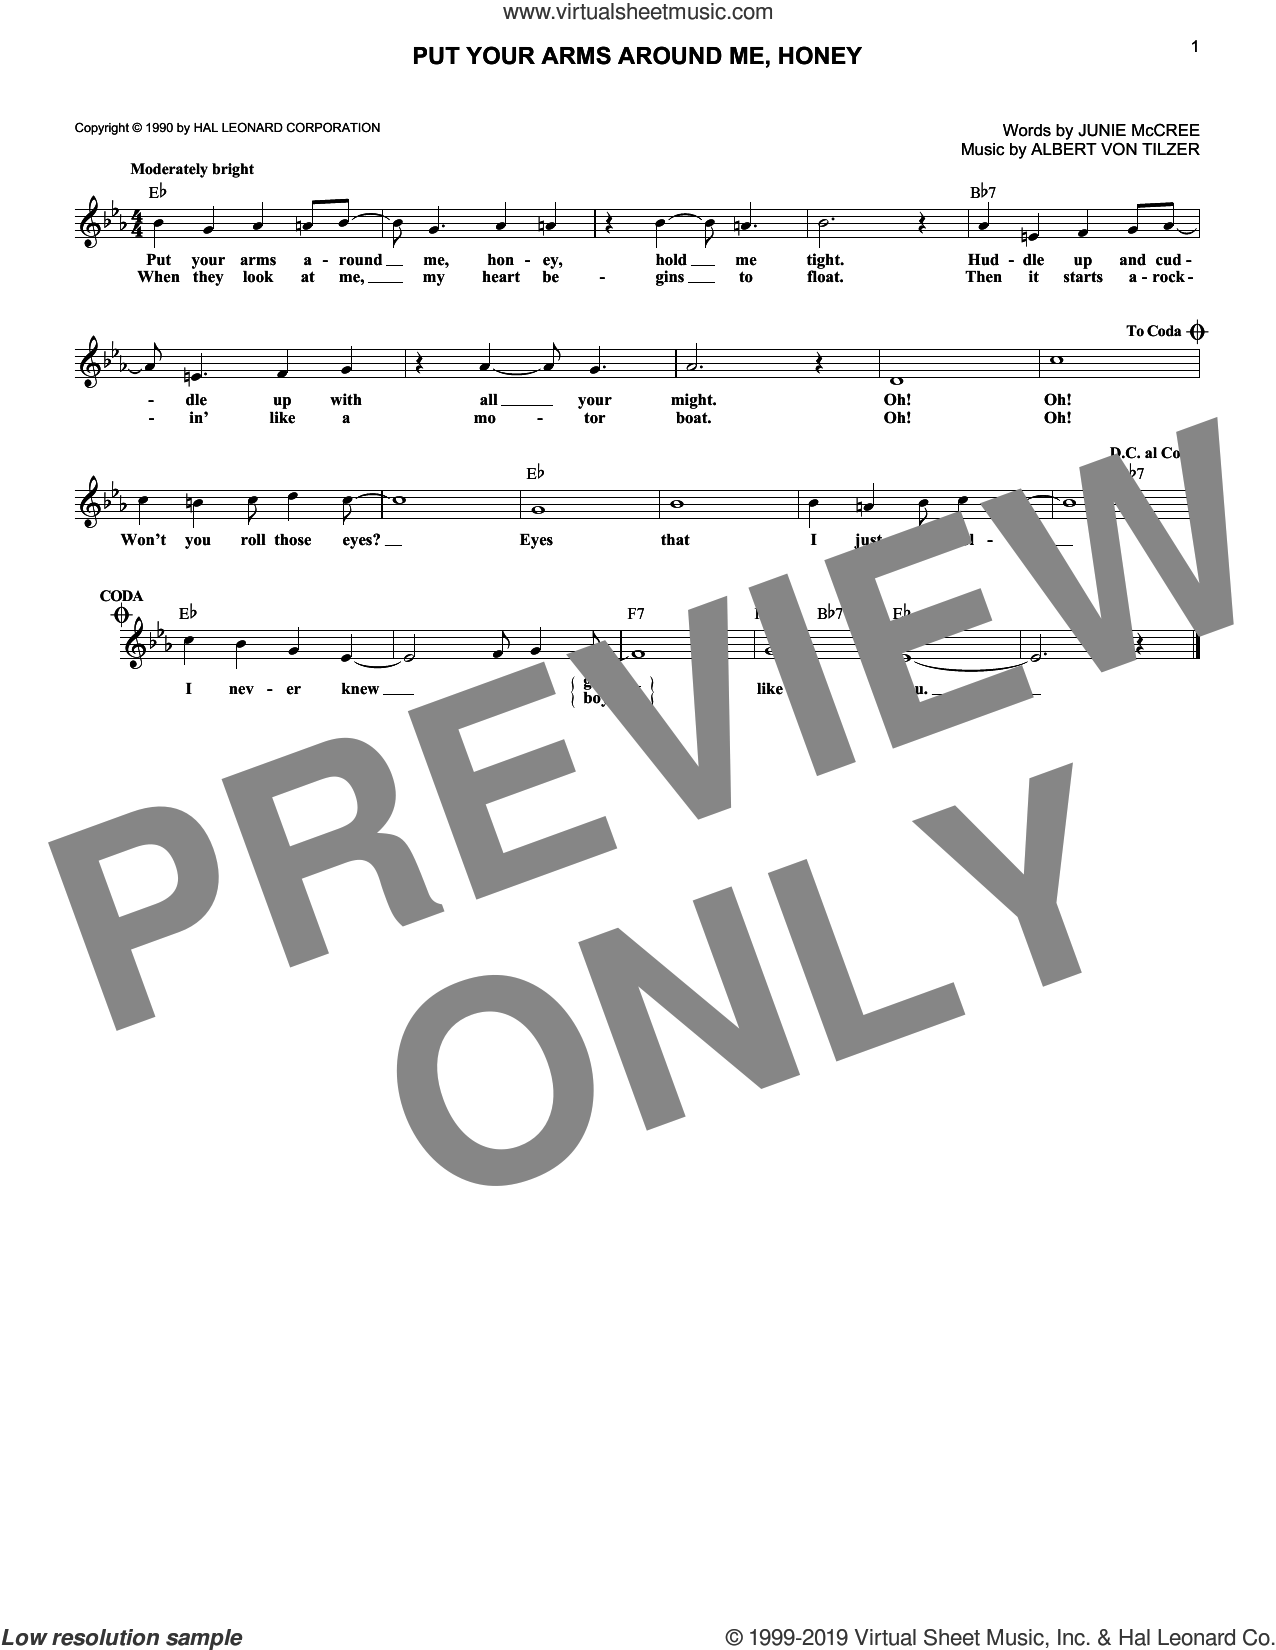 Put Your Arms Around Me, Honey sheet music for voice and other instruments (fake book) by Blossom Seely, Albert von Tilzer and Junie McCree, wedding score, intermediate skill level